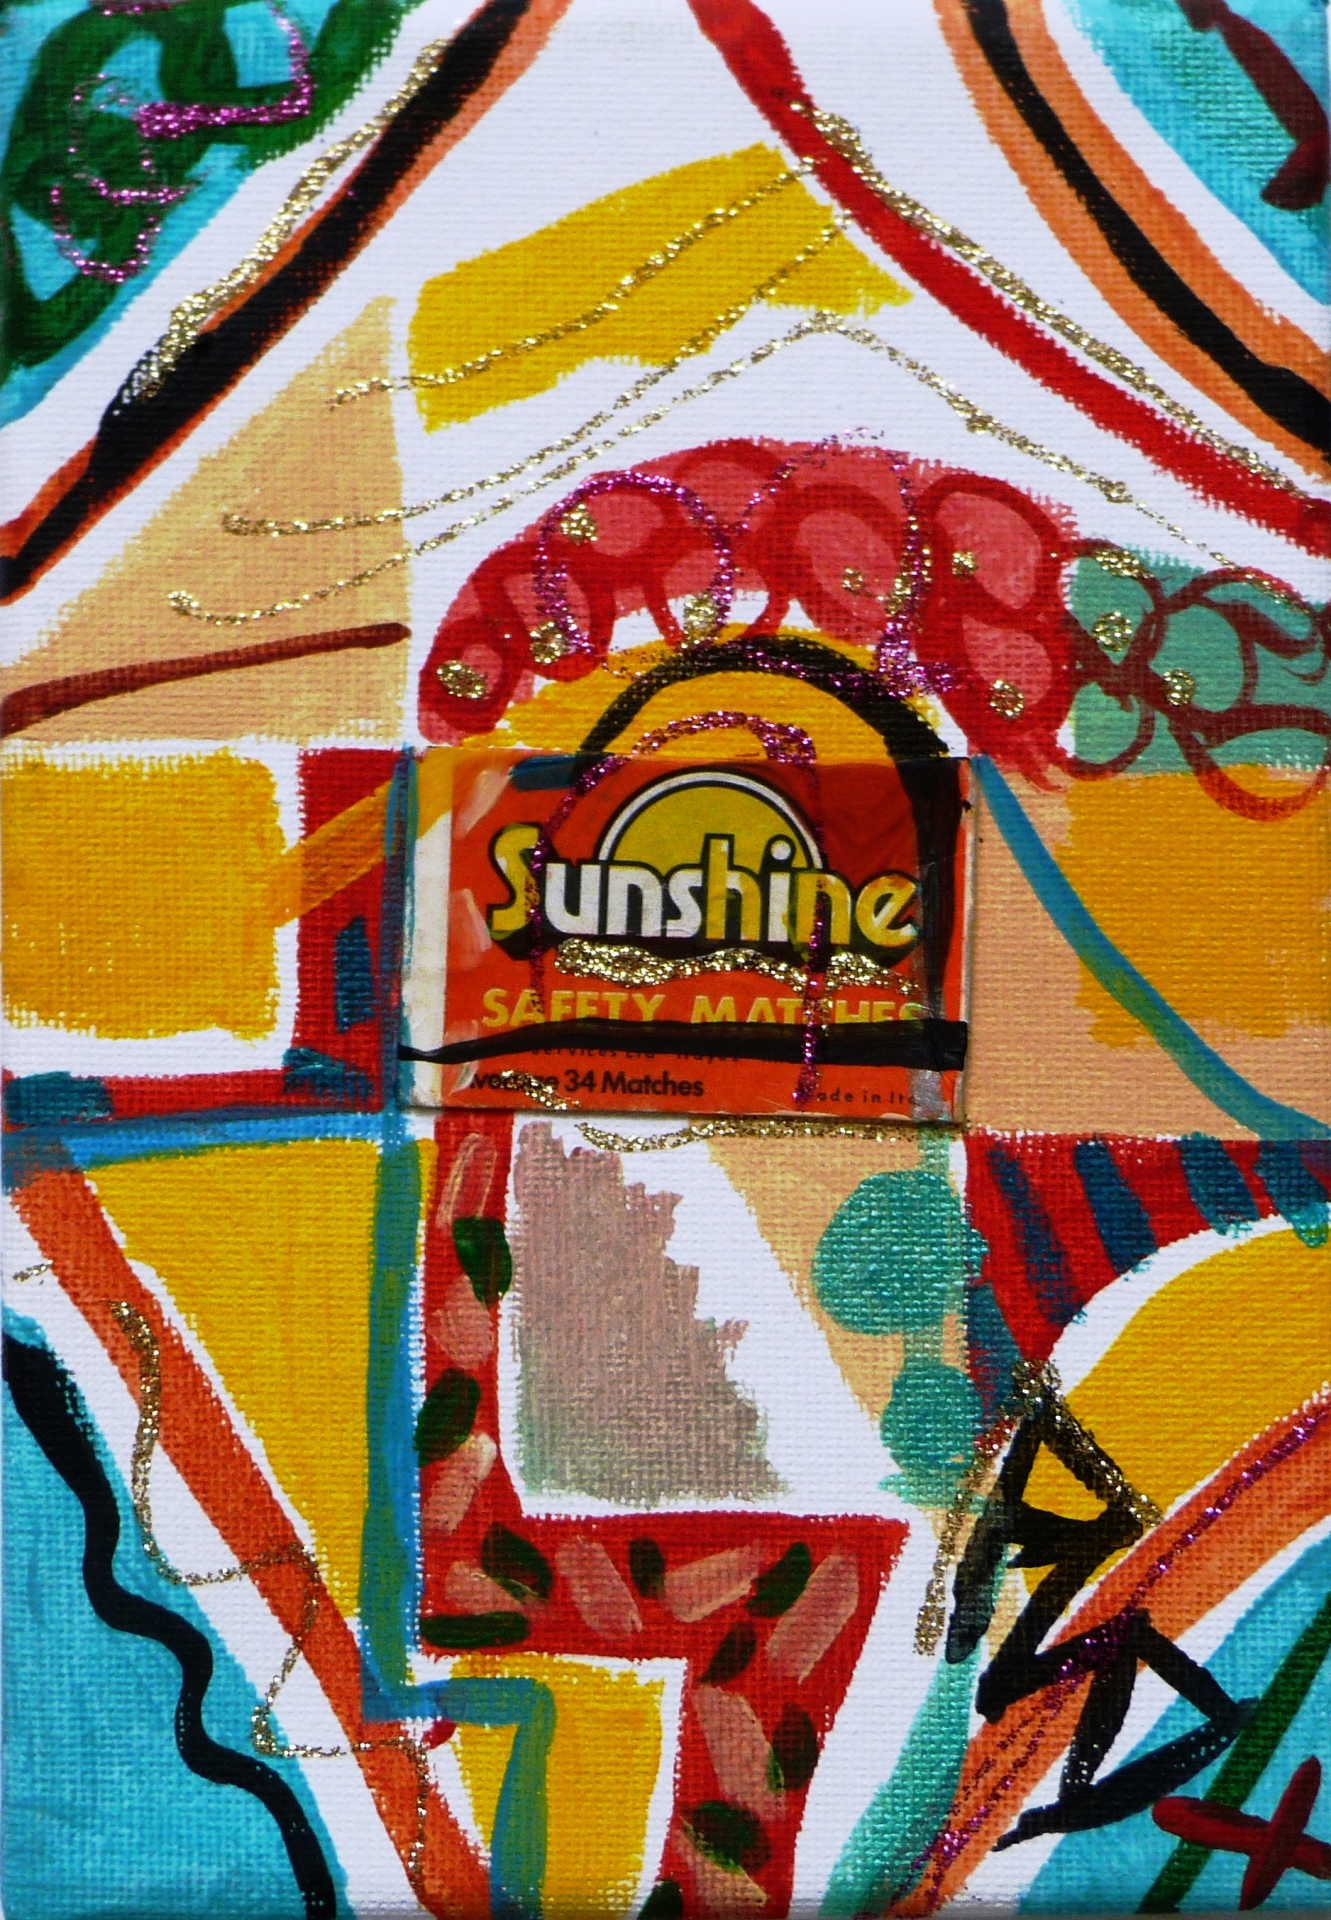 Matchbox Series 22. Sunshine Matchbox and Acrylic on Canvas. 12.7x17.7x1.5cm. 2014.